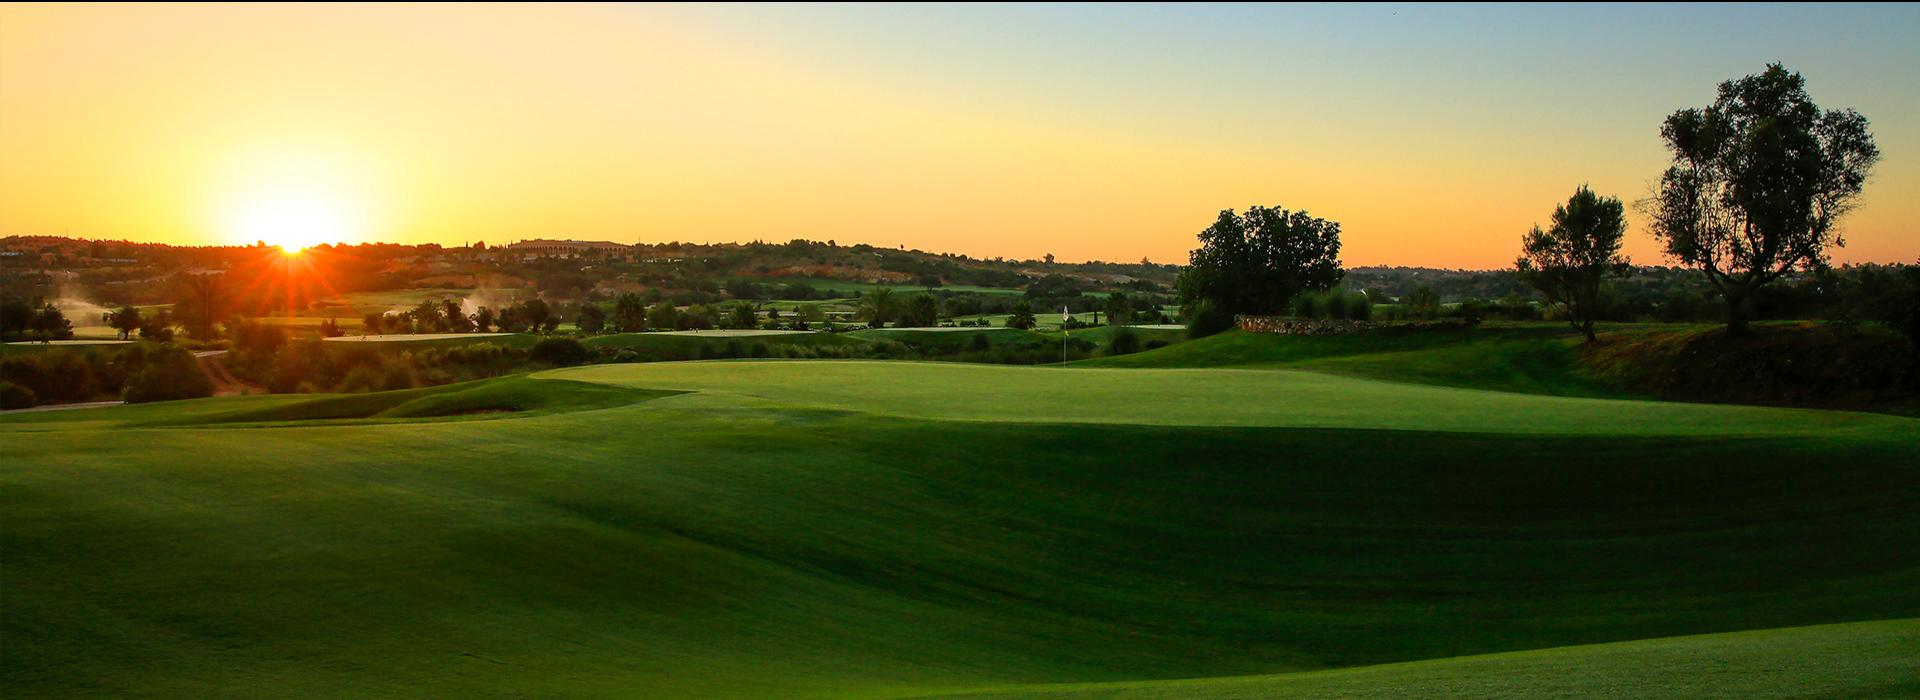 Faldo course at dawn